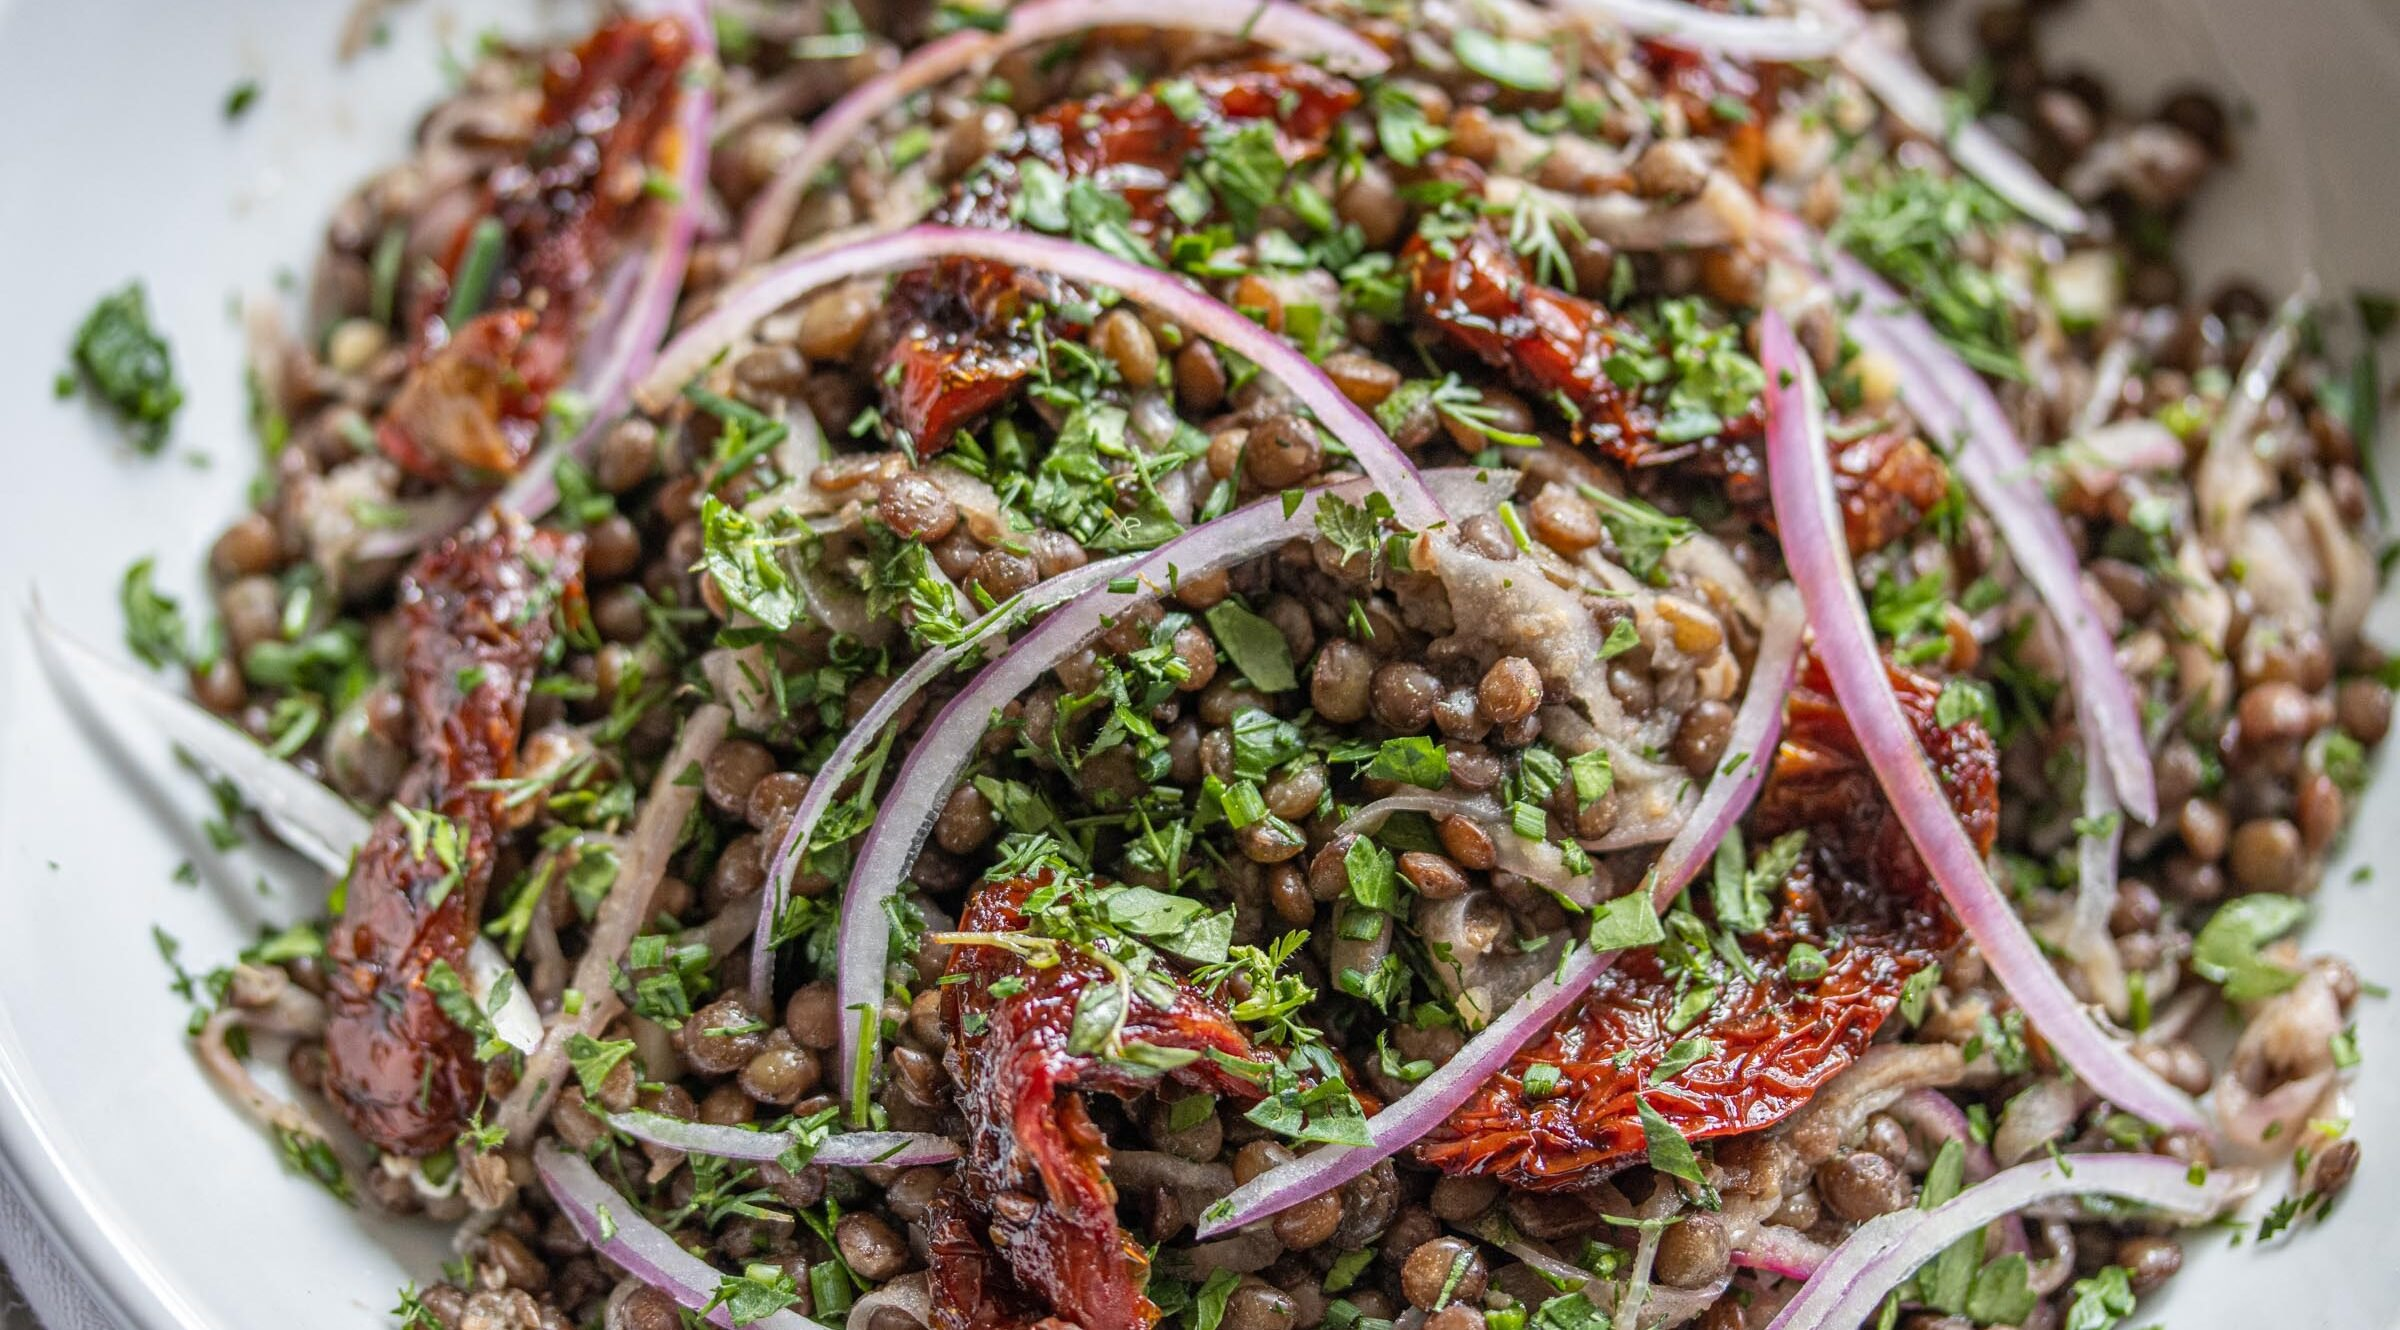 lentils with sun-dried tomatoes, onion and fresh herbs